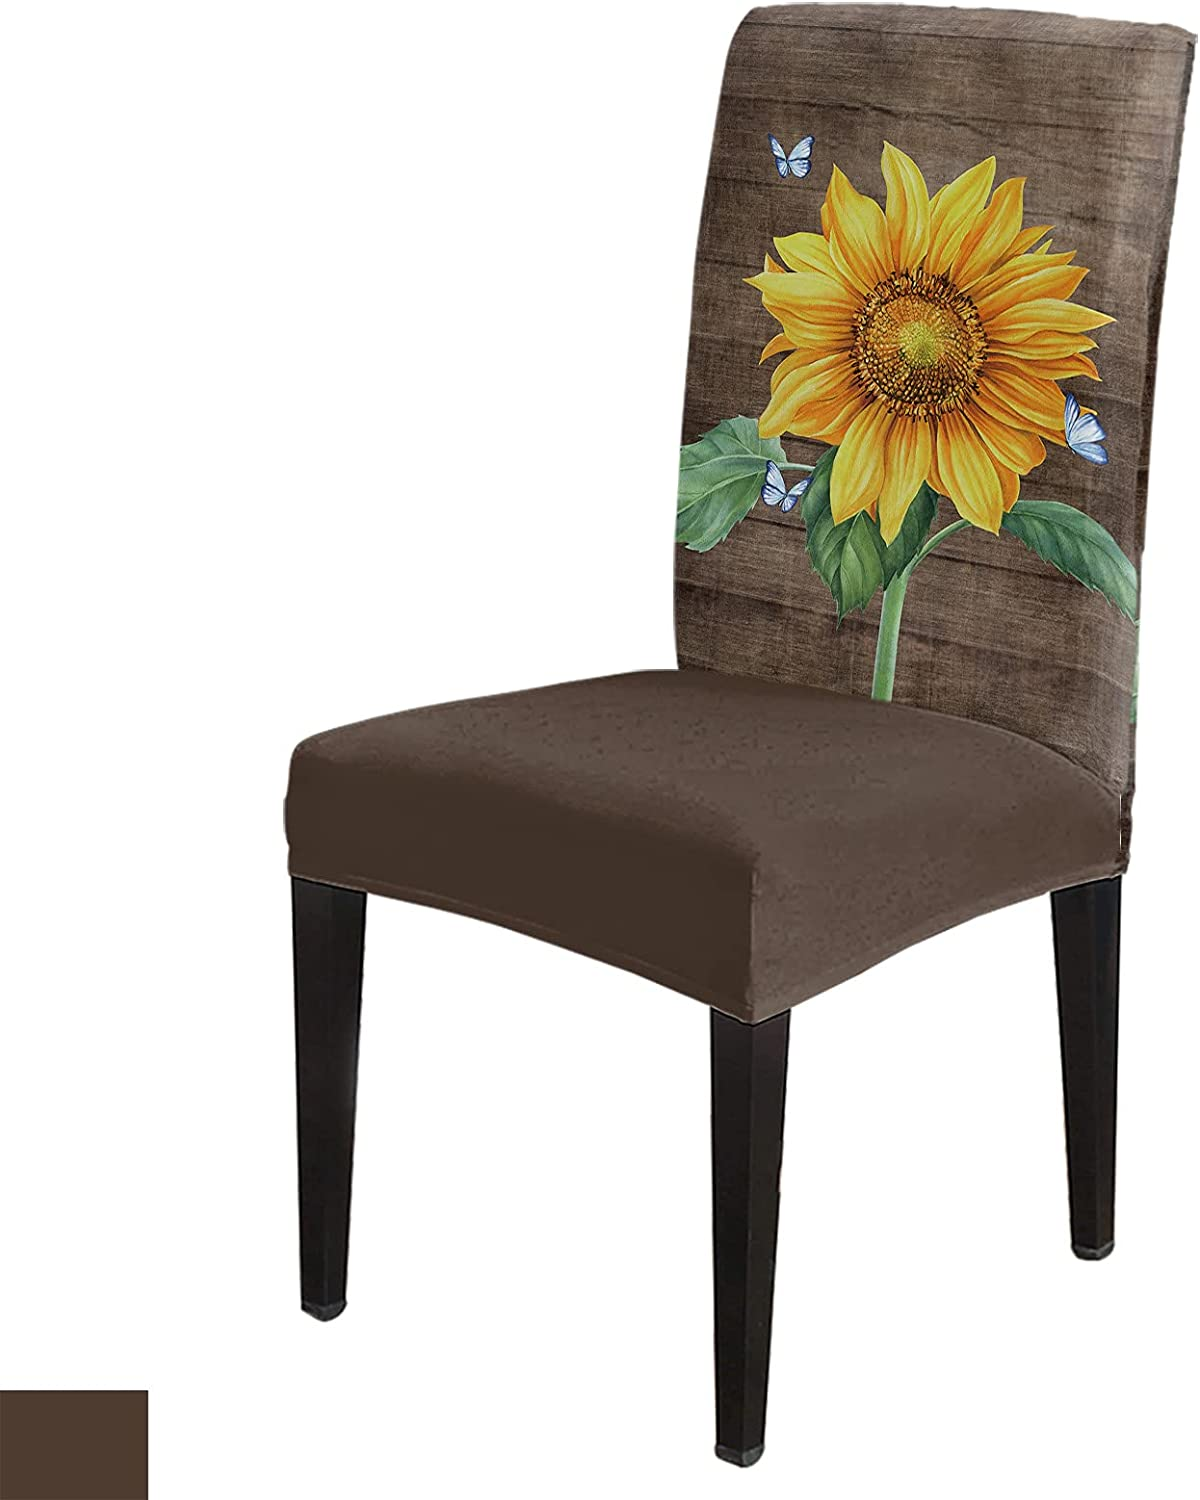 Sunflowers Chair New product! New type Slip Covers sold out Dining Stretchable Protector